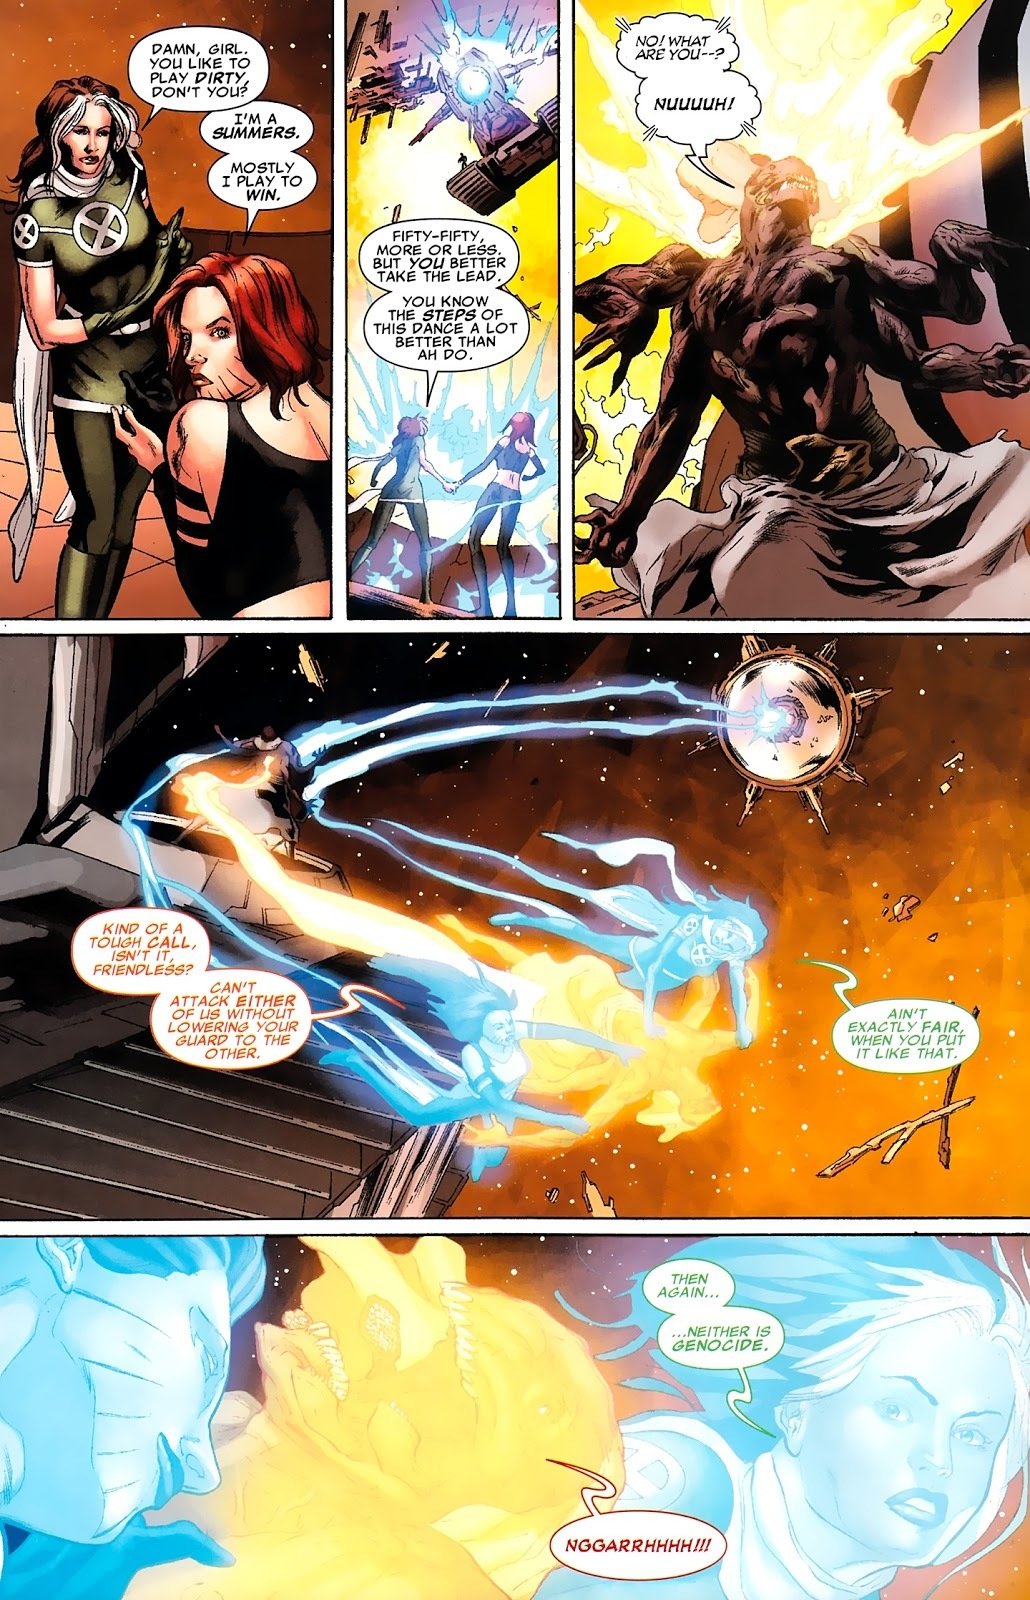 After splitting her powers with Rogue, is able to pull Friendless (a stronger telepath mindcontrolling the armies of a space station housing 2 billion people) onto the astral plane and force him to function as a supercomputer to make calculations. -X-Men Legacy V1 #258